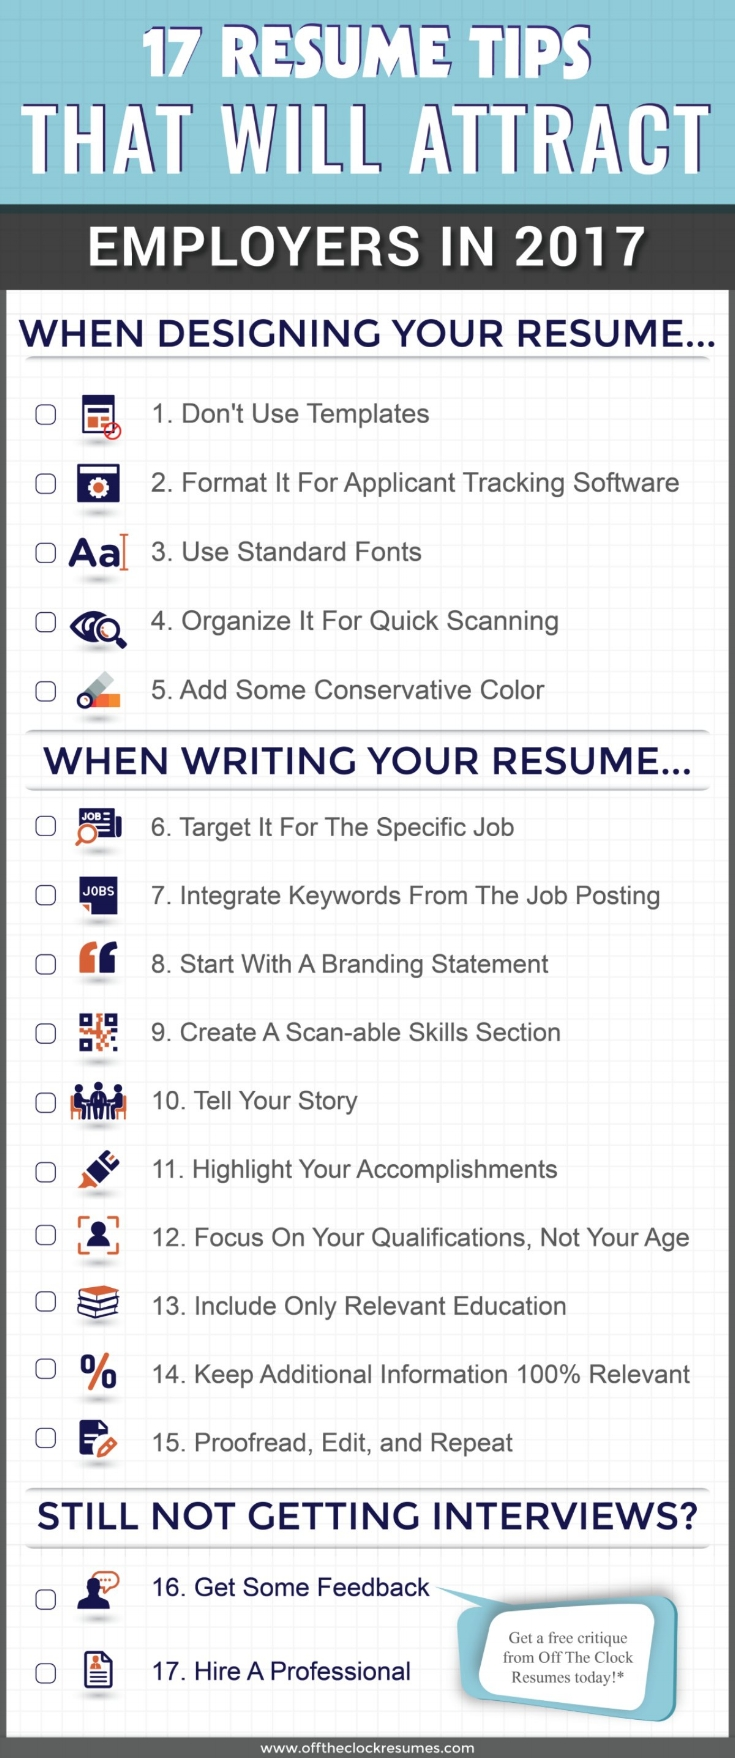 17 resume tips that will attract employers in 2017 infographic off the clock resumes